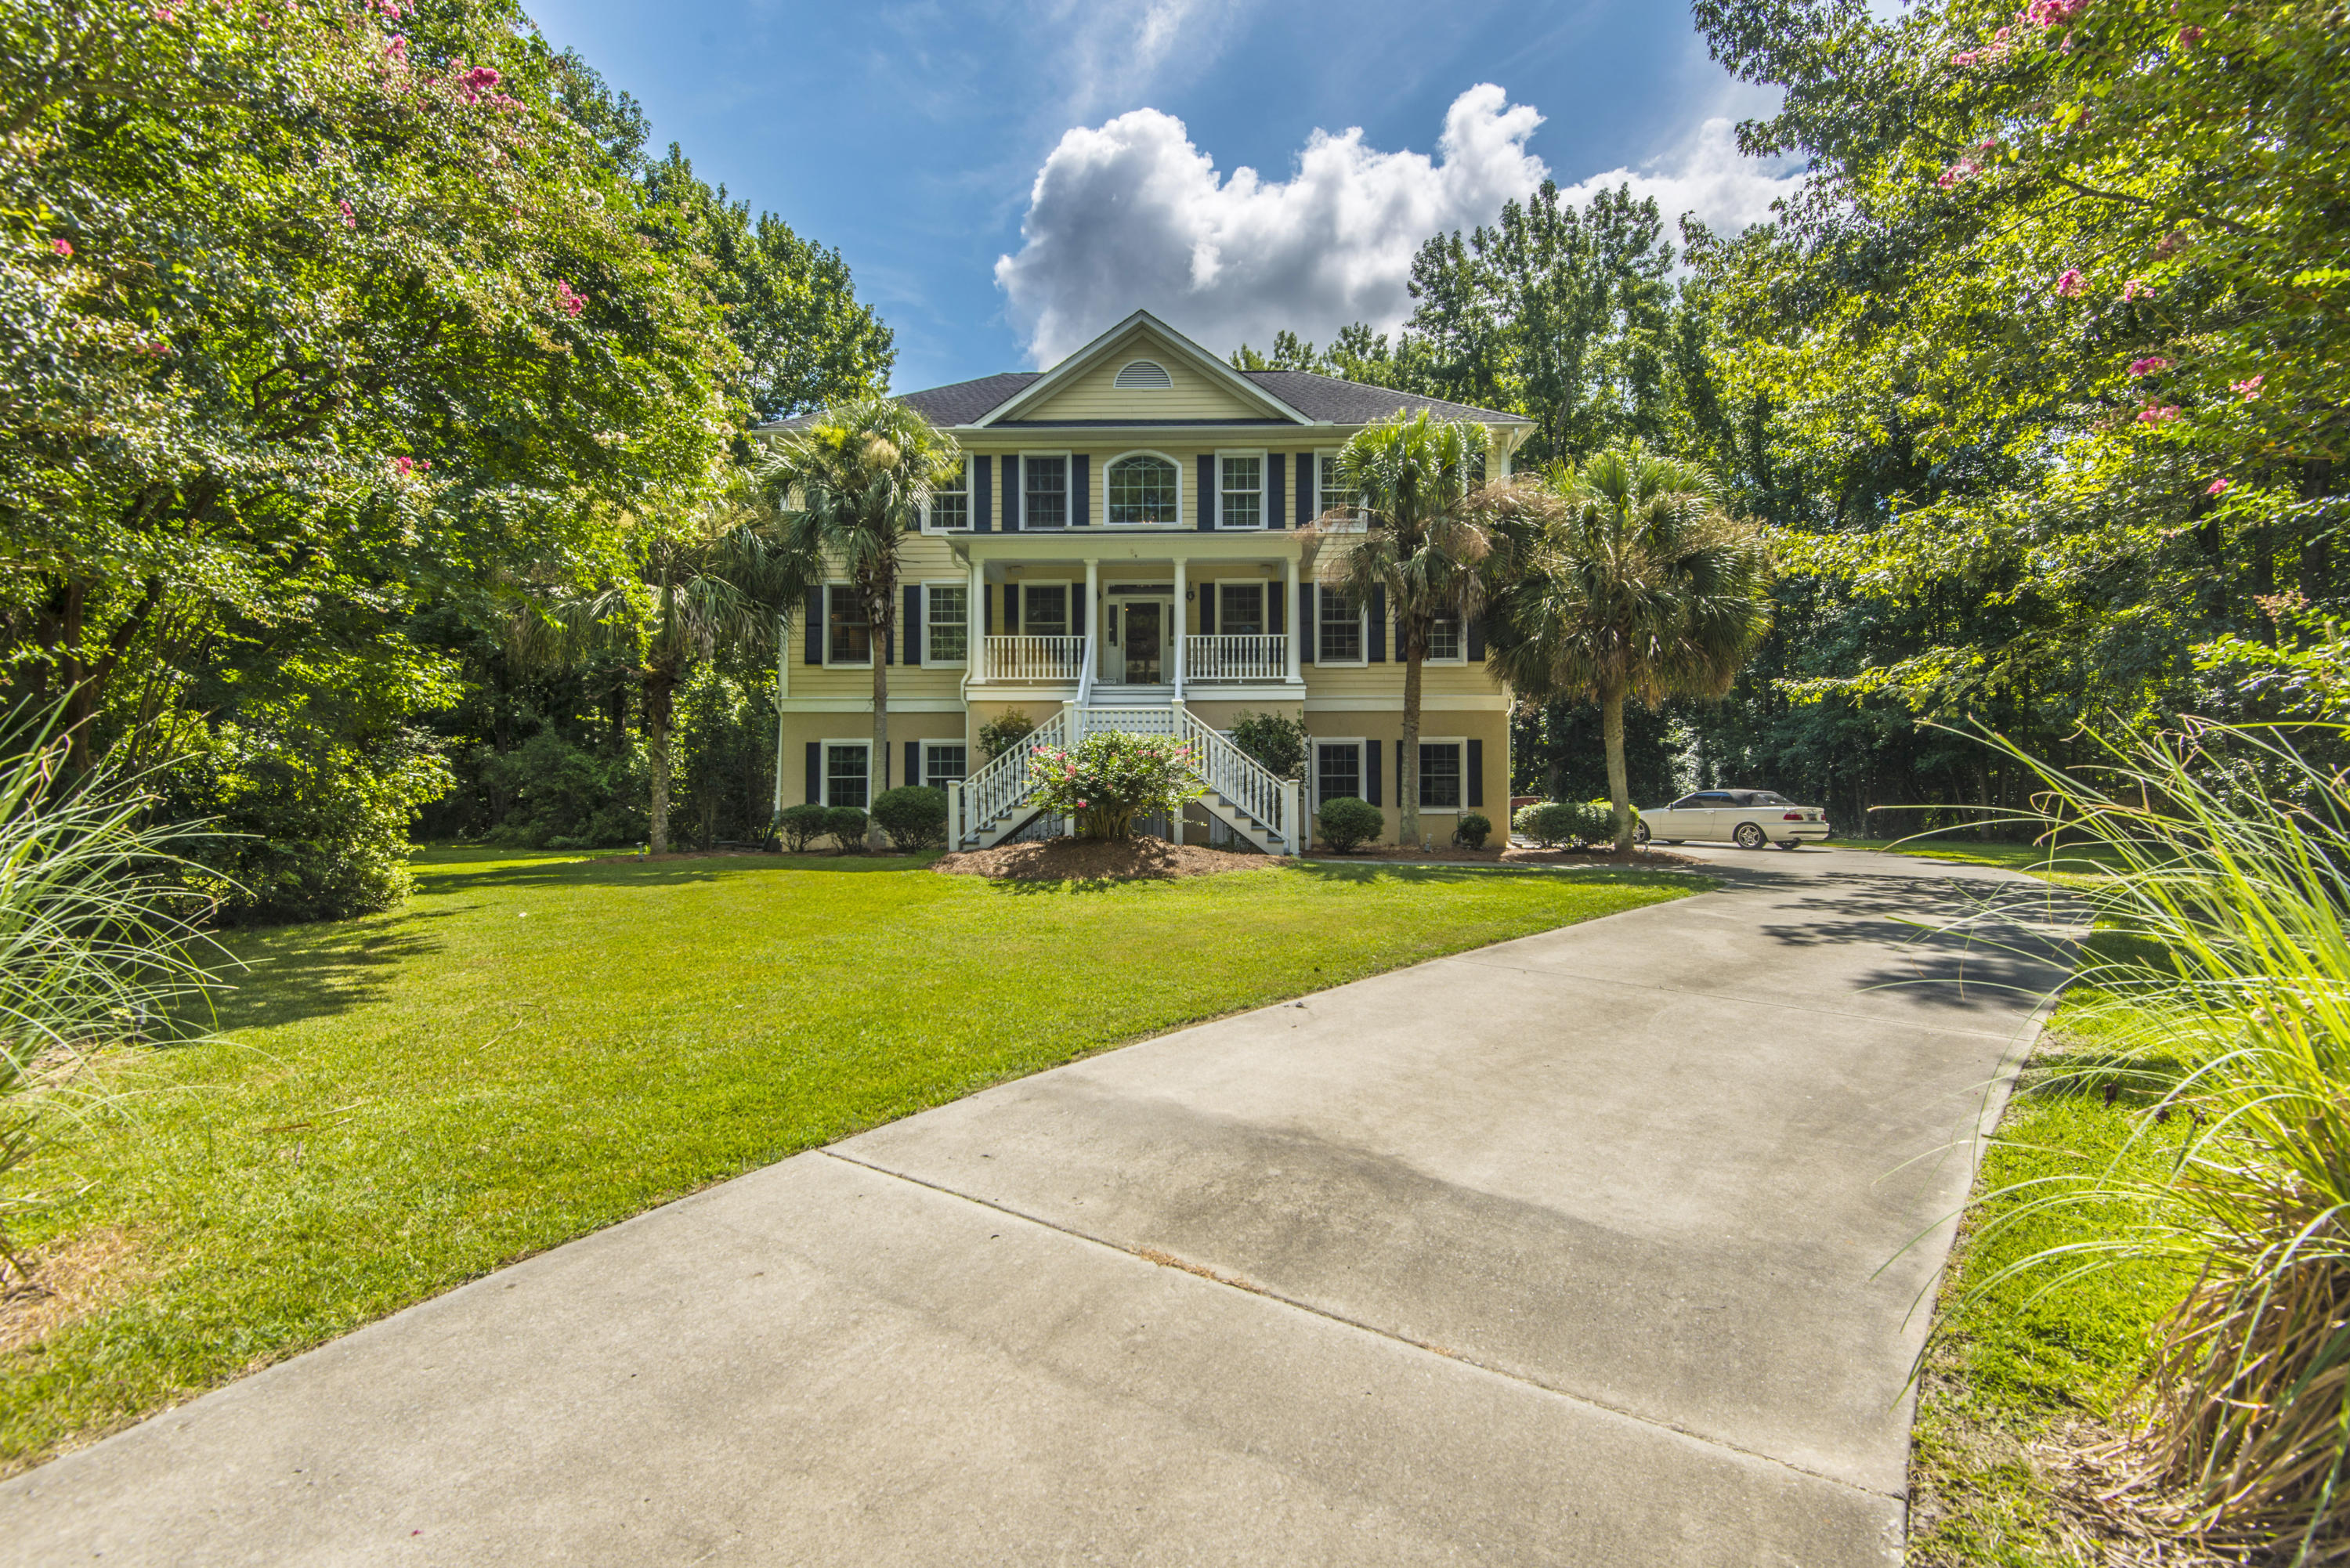 Alston Point Homes For Sale - 552 Flannery, Mount Pleasant, SC - 20